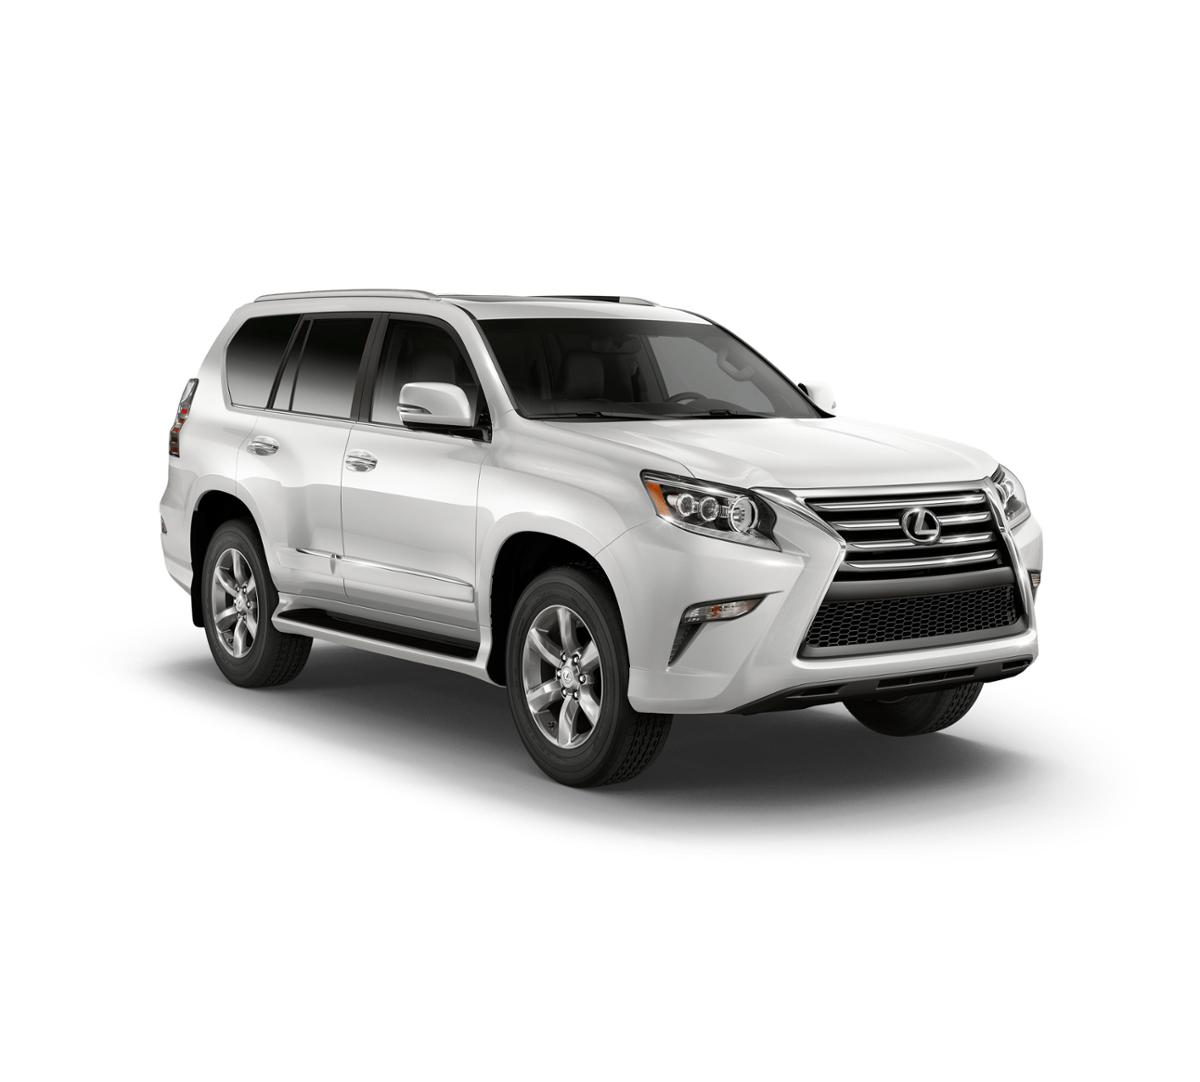 2019 Lexus GX 460 Vehicle Photo in El Monte, CA 91731